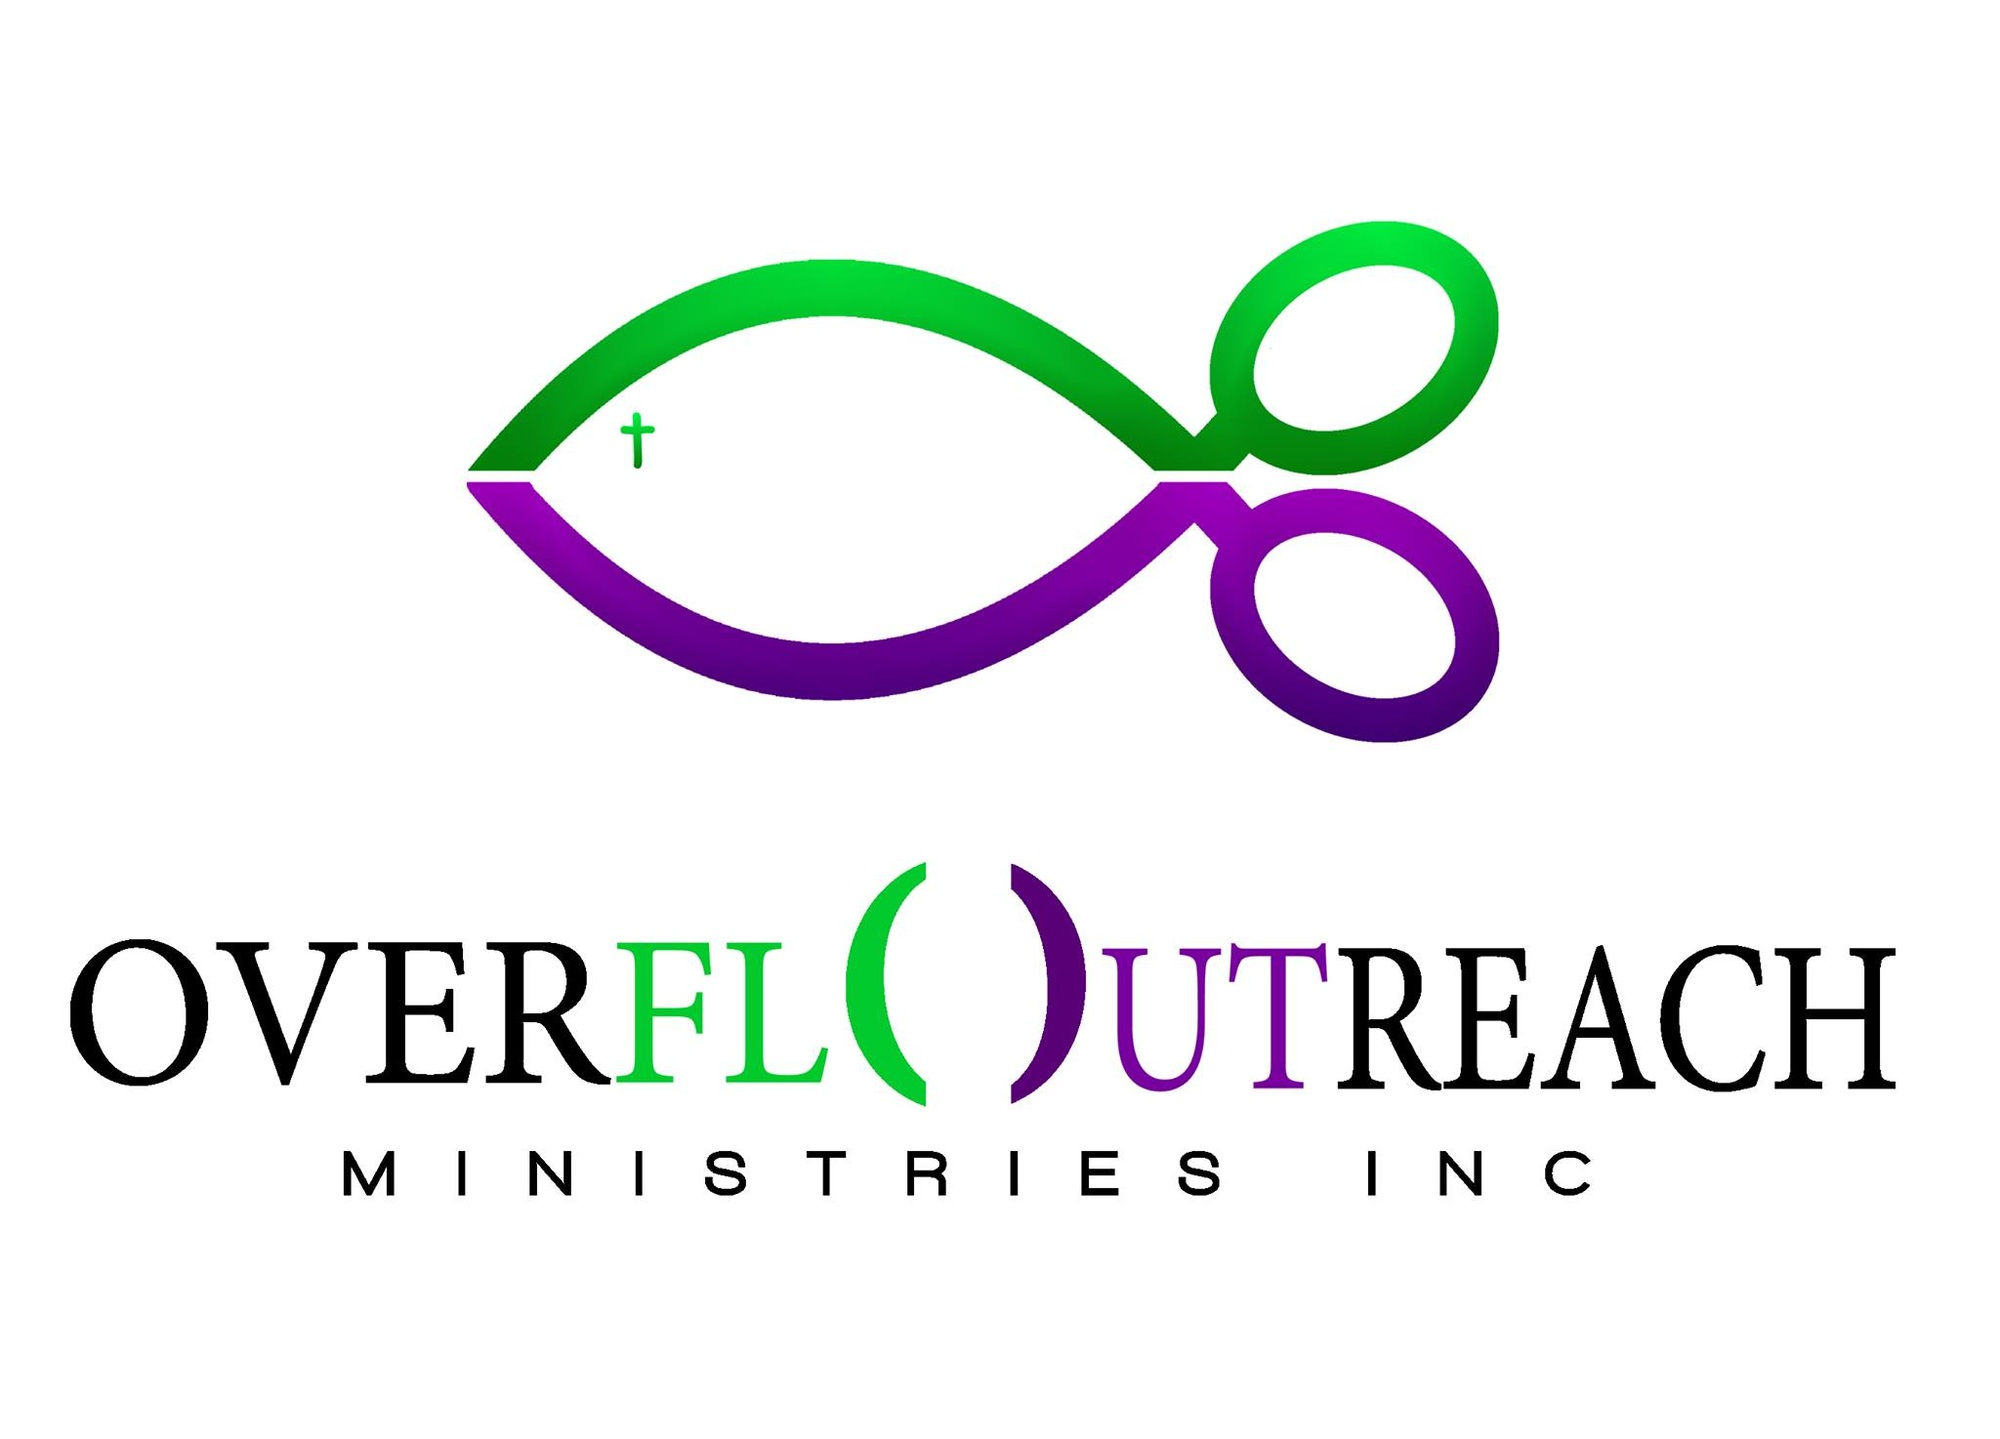 Overflo Outreach Ministries